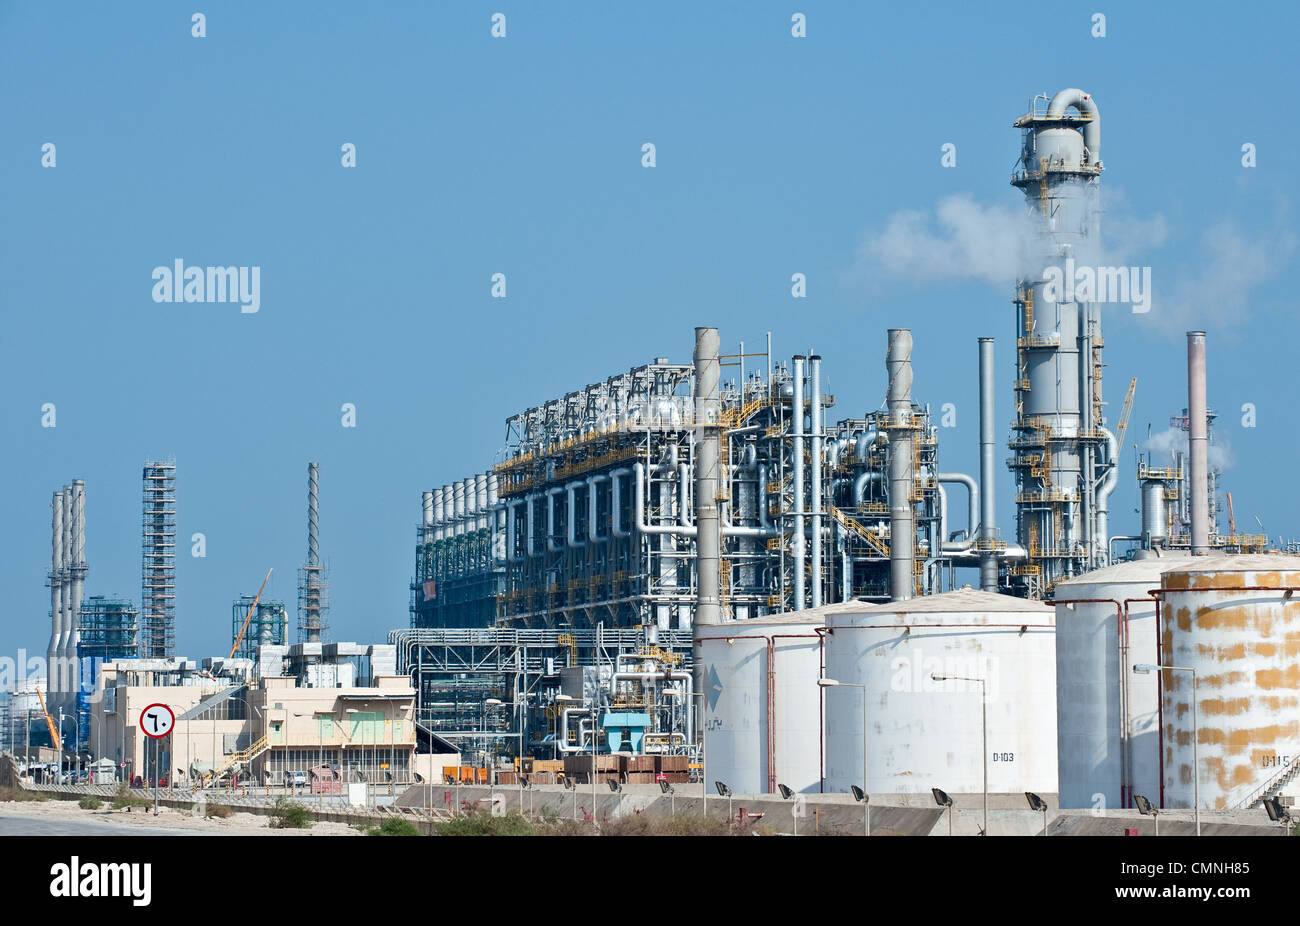 Oil Industry Saudi Arabia Stock Photos & Oil Industry Saudi